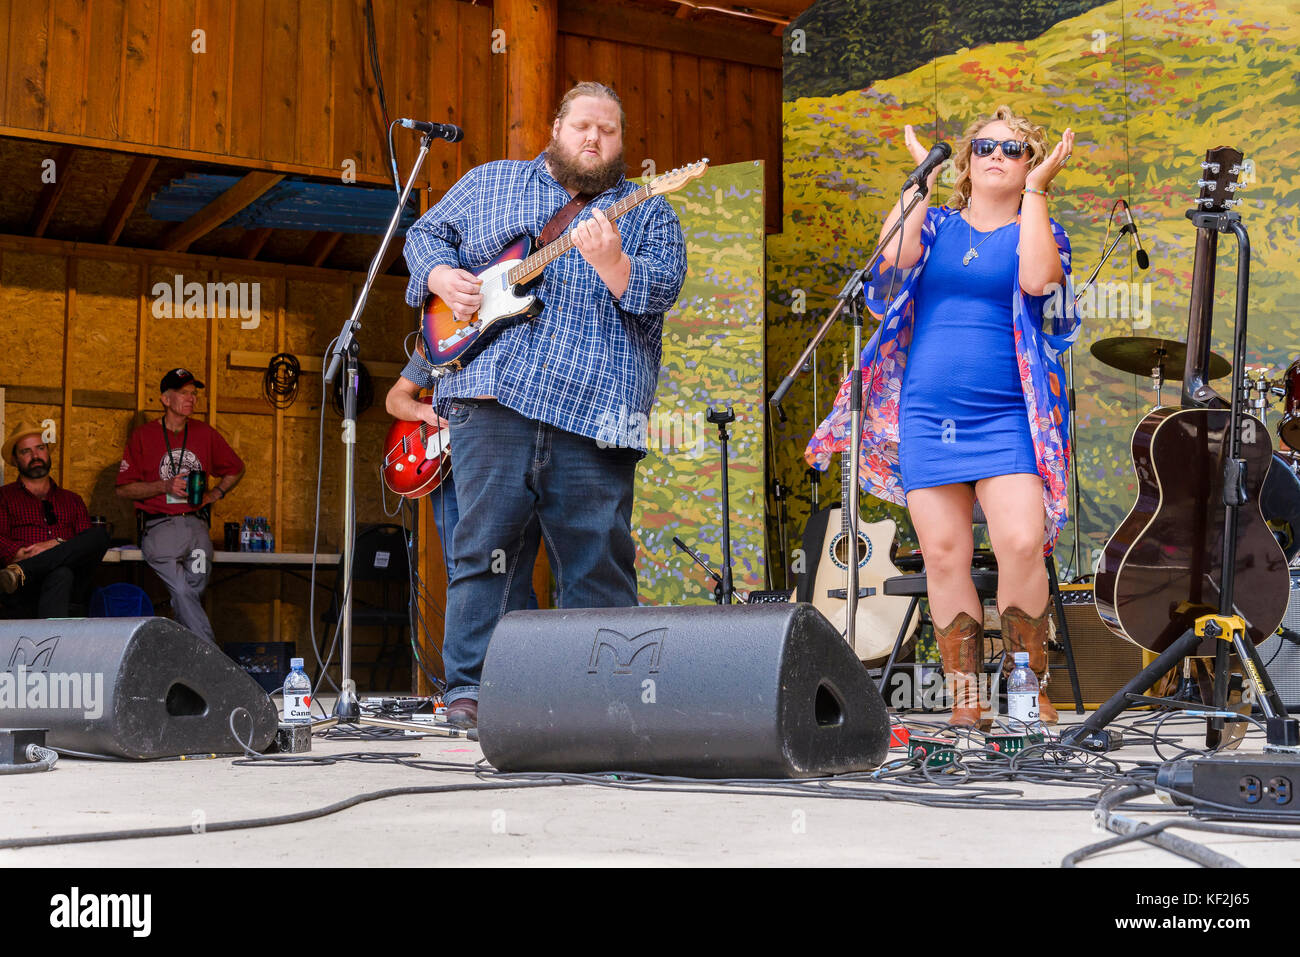 Samantha Martin and Matt Anderson performing at Canmore Folk Music Festival, Canmore, Alberta, Canada - Stock Image